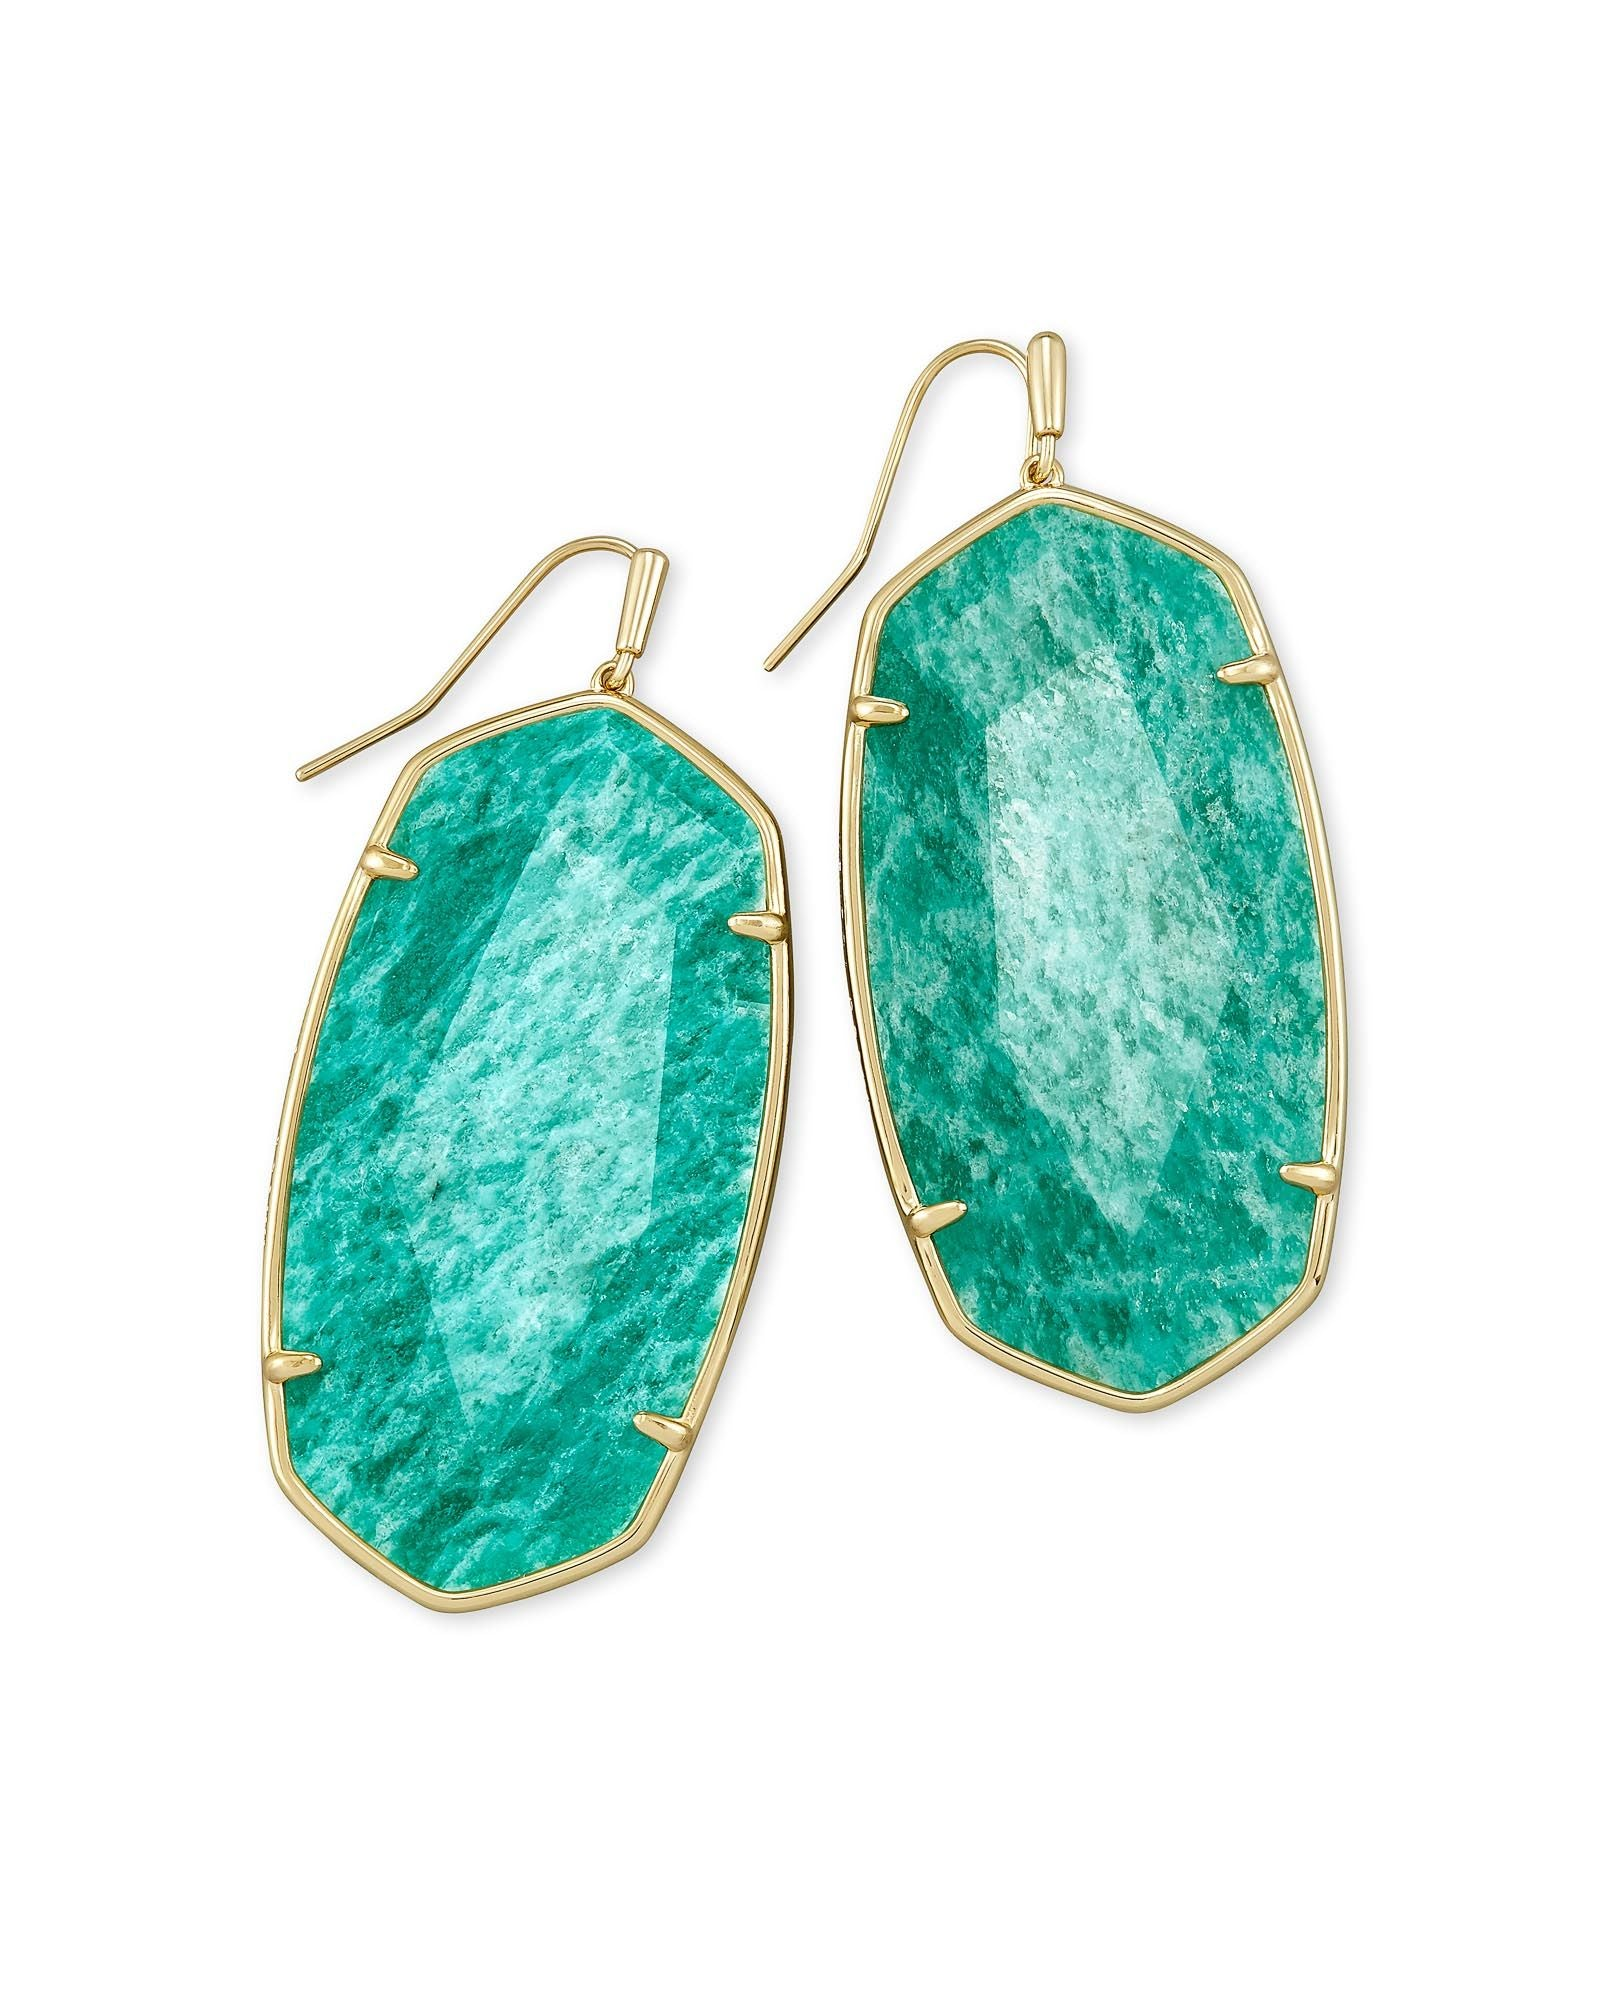 Faceted Danielle Earring Gold Dark Teal Amazonite